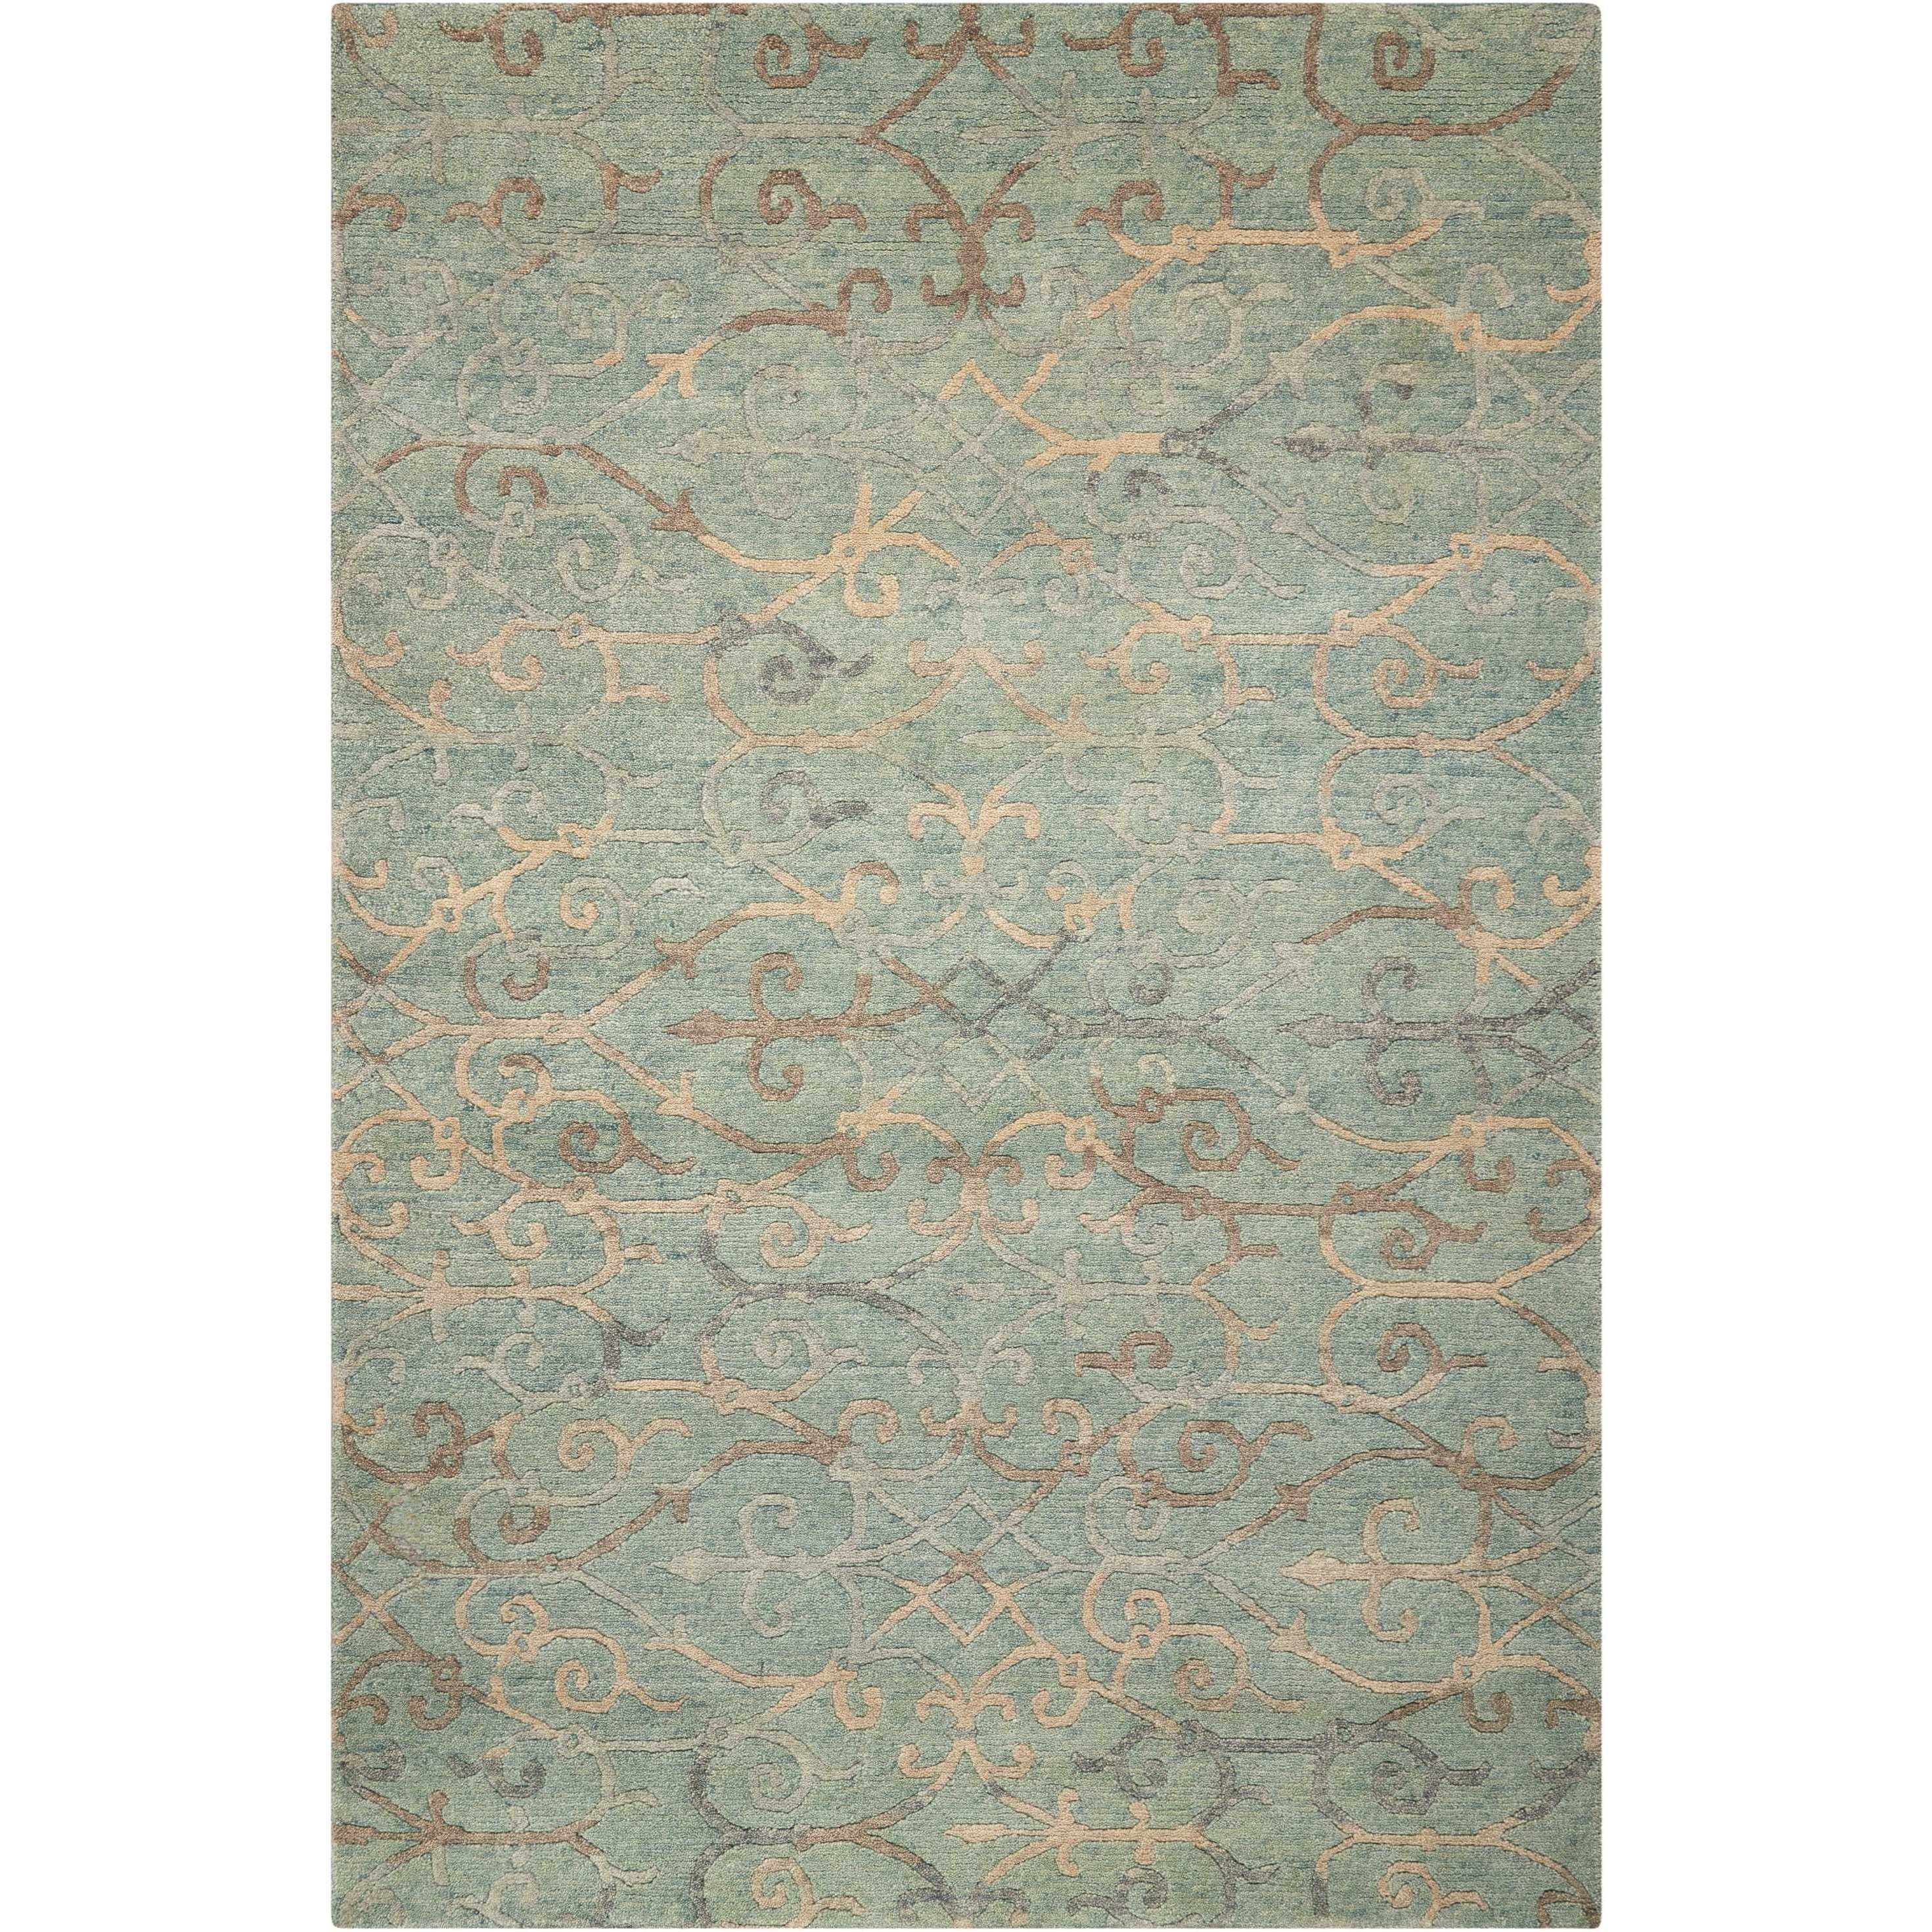 """Tahoe Modern 7'9"""" x 9'9"""" Seaglass Rectangle Rug by Nourison at Home Collections Furniture"""